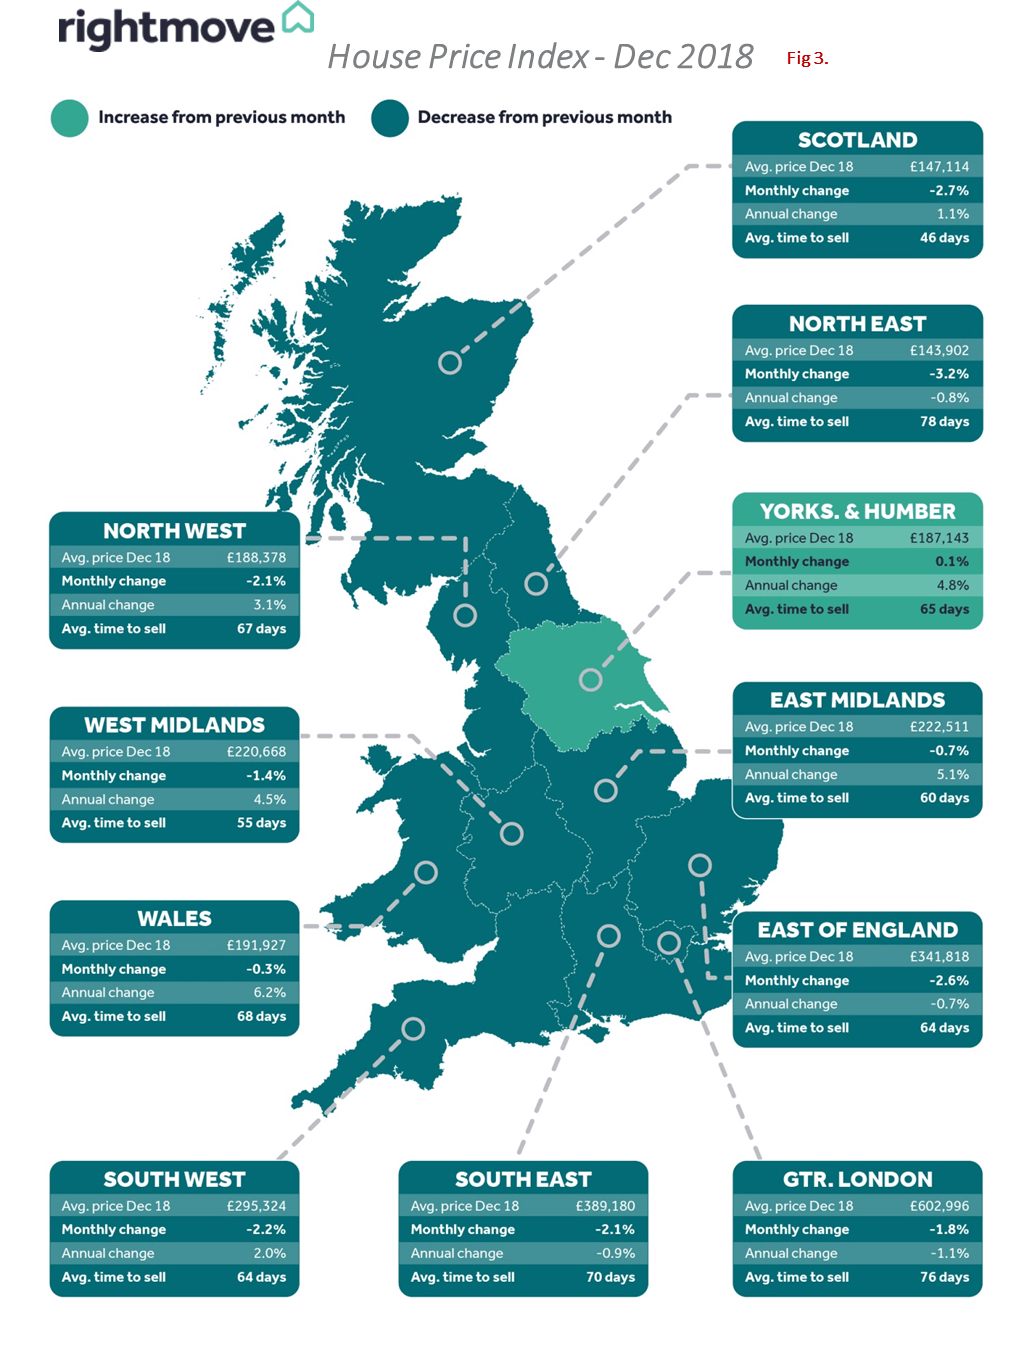 Fig 3. Rightmove's House Price Index - Dec 2018